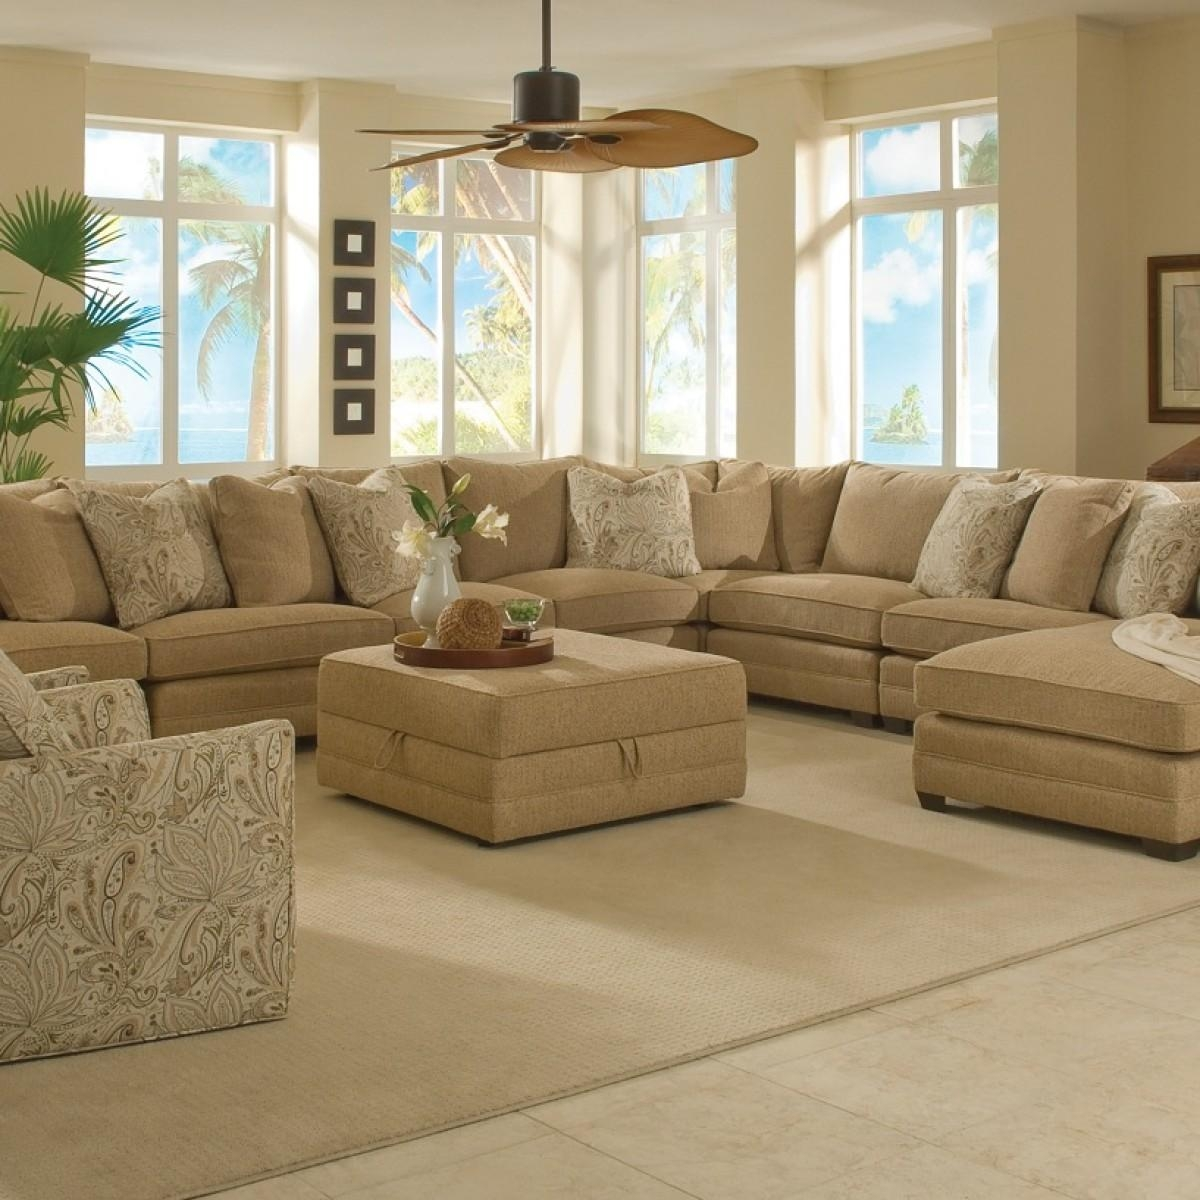 Furniture: Nice Extra Large Sectional Sofa For Large Living Room Inside Oversized Sectional Sofa (View 16 of 20)